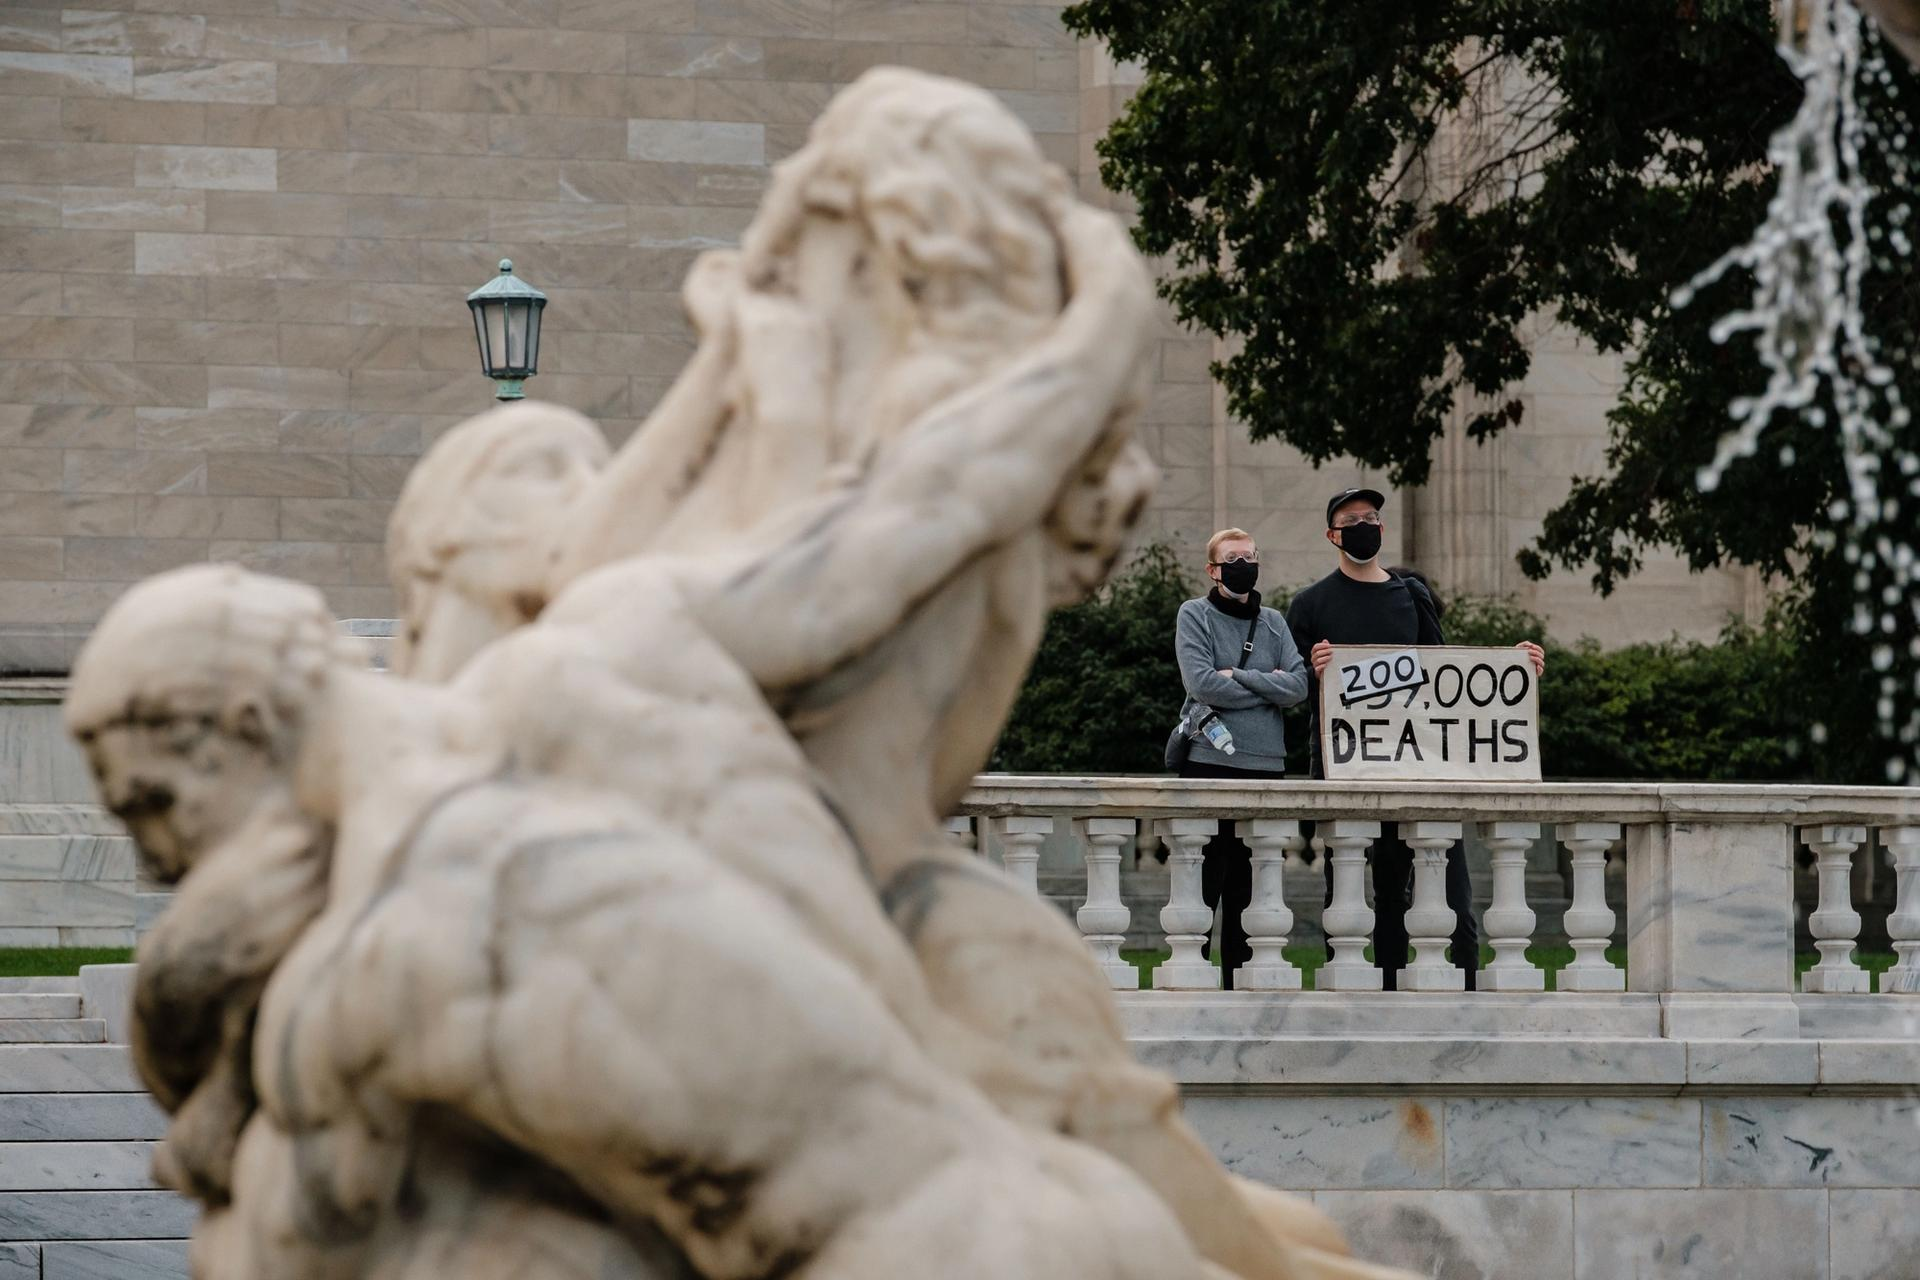 Protesters on the steps of the Cleveland Museum of Art earlier this week. Andrew Dolph/ZUMA Wire/Shutterstock